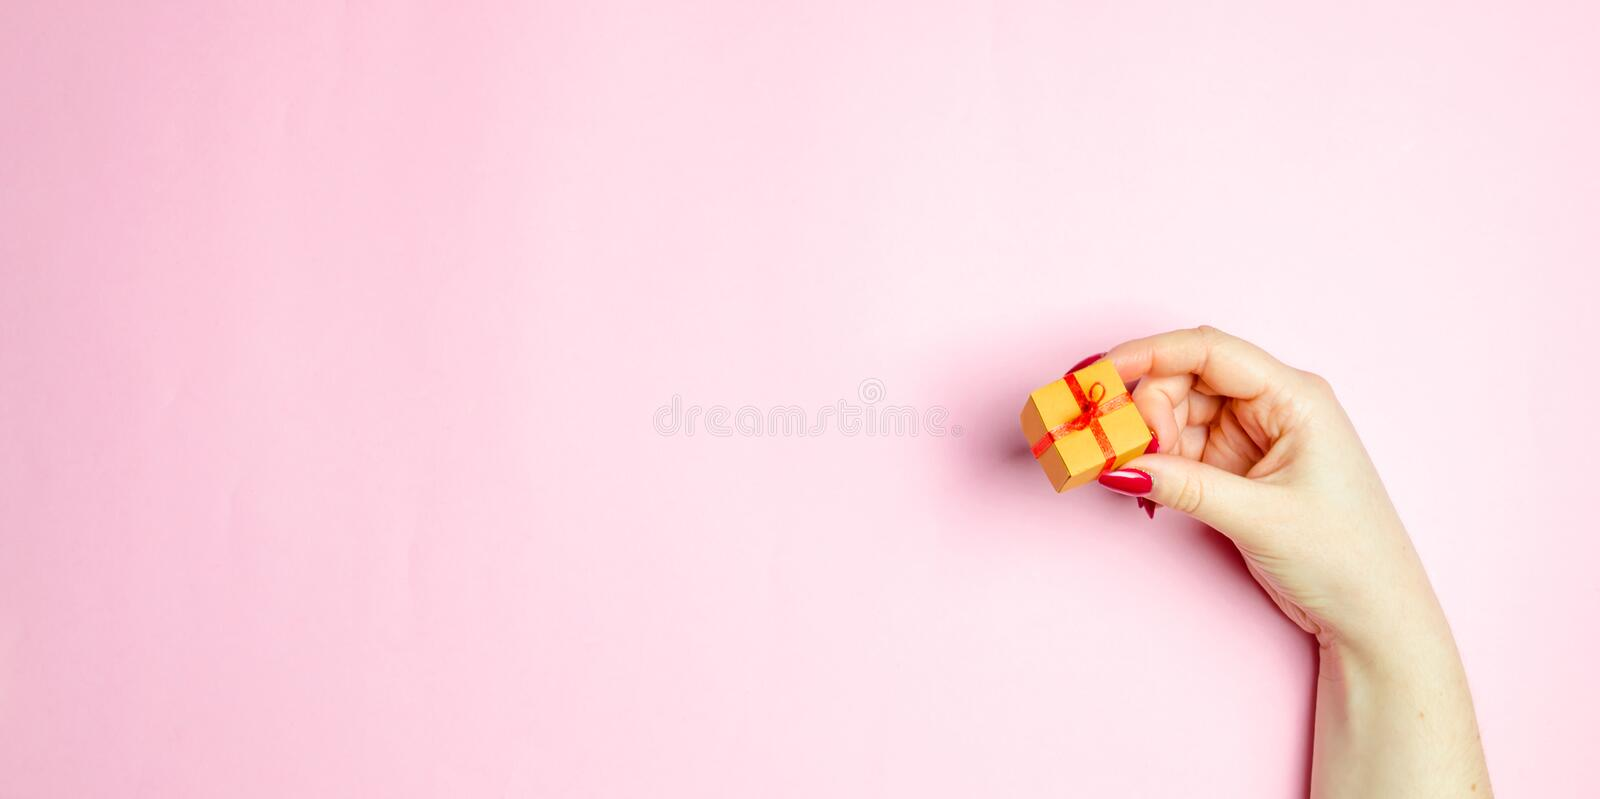 The girl holds out a gift on a pink background. Concept gift for your loved one on Valentine`s Day. Make it nice to pick the righ royalty free stock photography